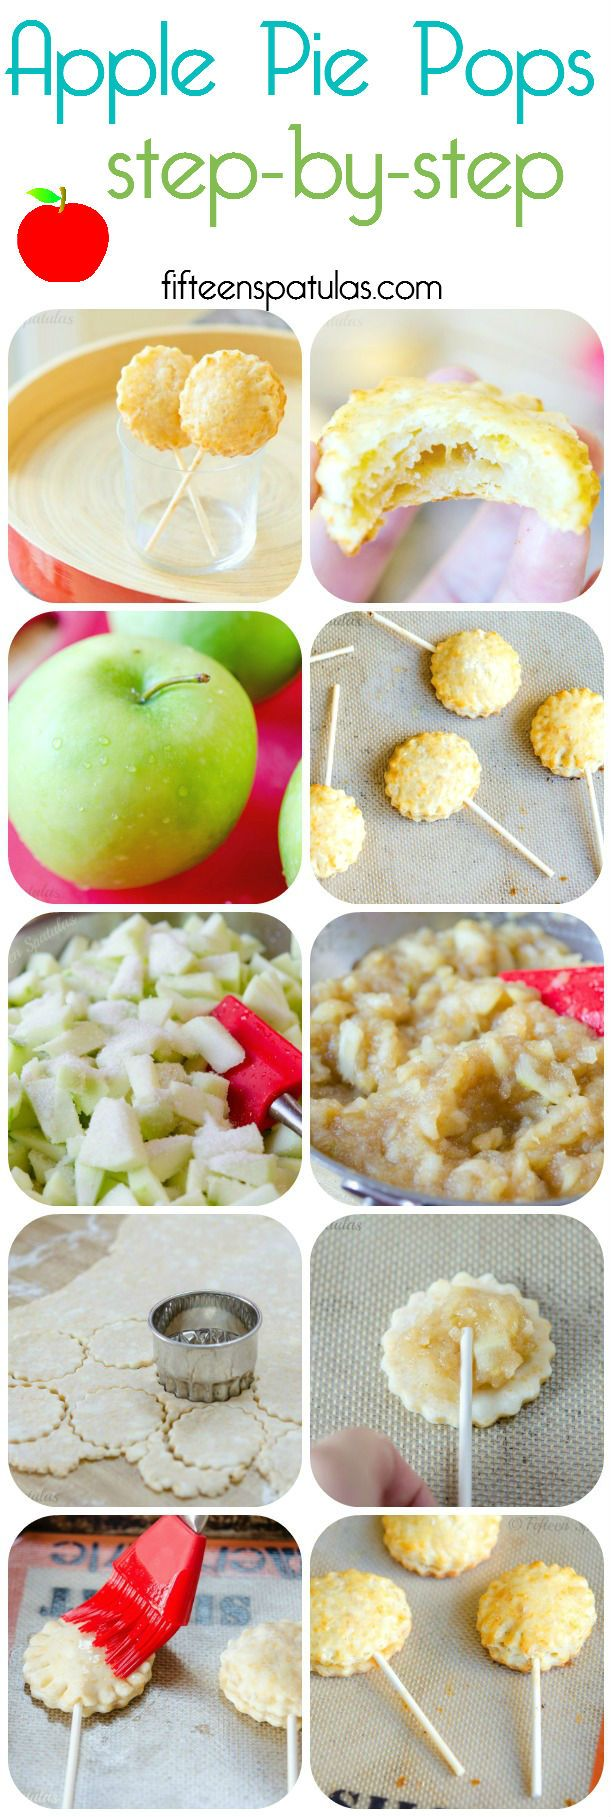 Apple Pie Pops with Cheddar Crust from @Shonda Clements Clements Clements Clements Chadwick Spatulas | Joanne Ozug #recipe